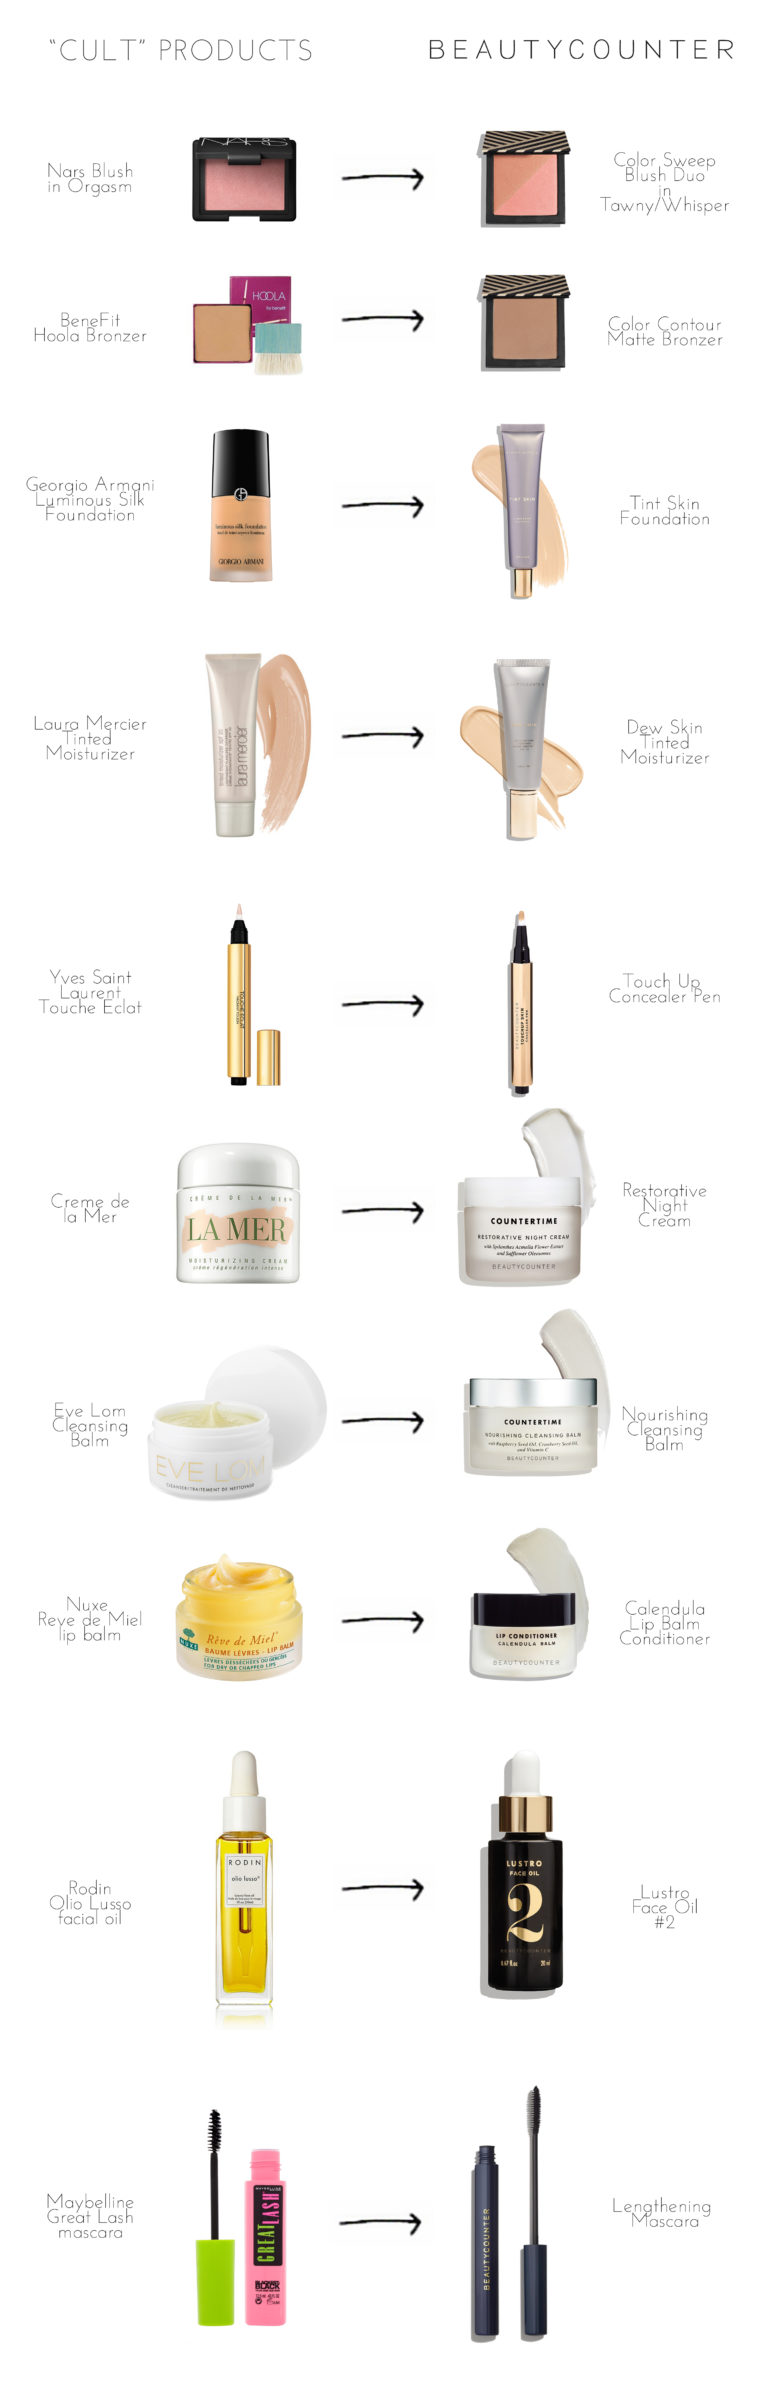 safe alternatives to Cult Beauty Products